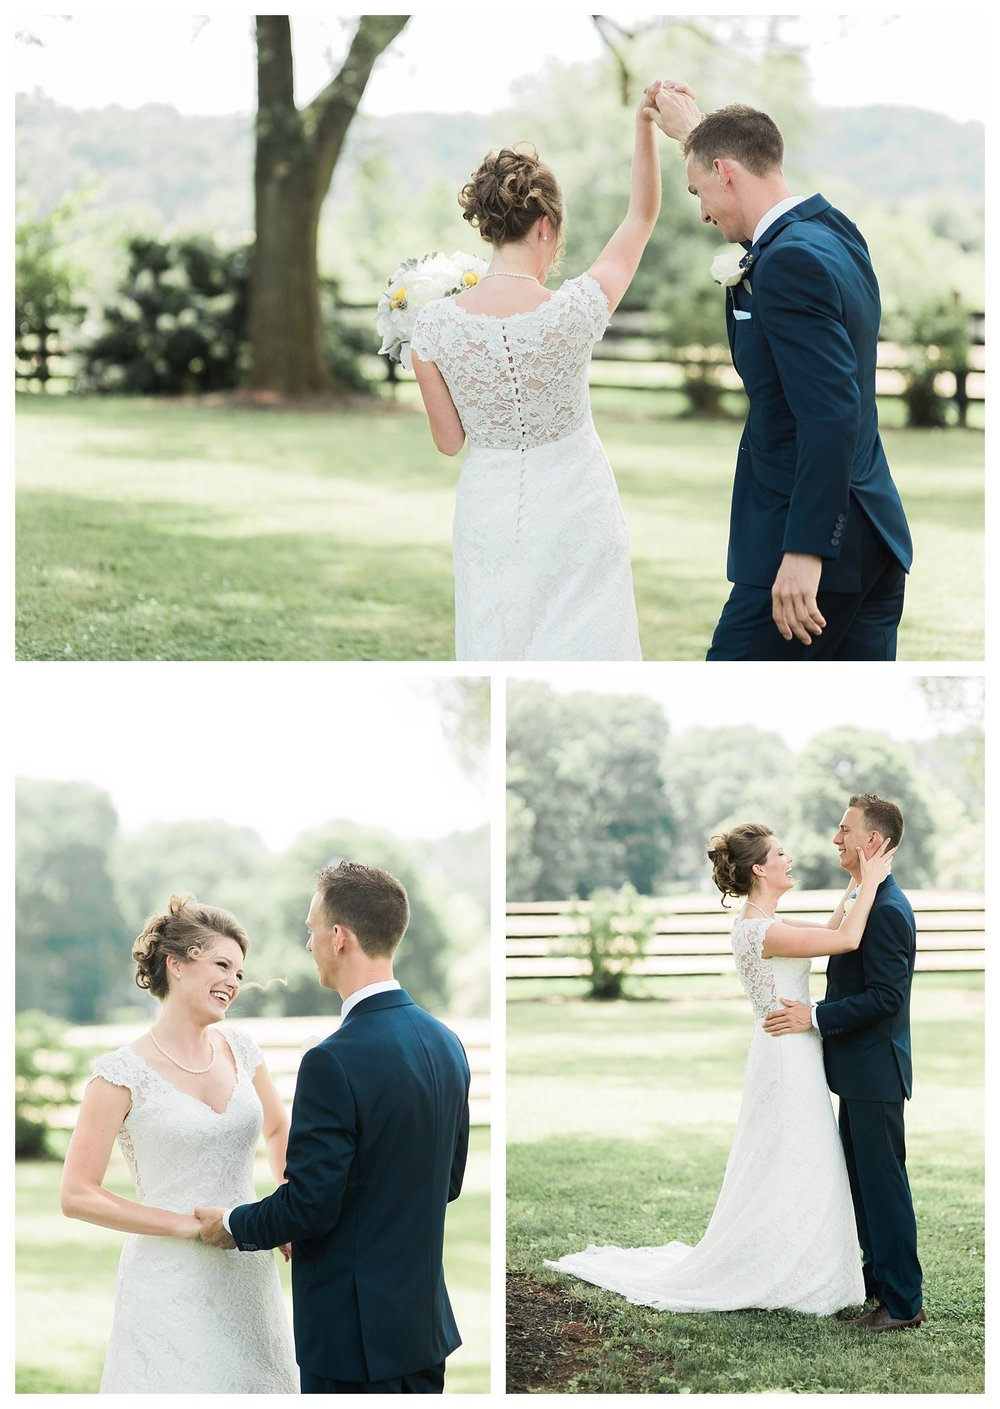 richwood-on-the-river-everleigh-photography-roby-and-tabitha-foree-wedding-28